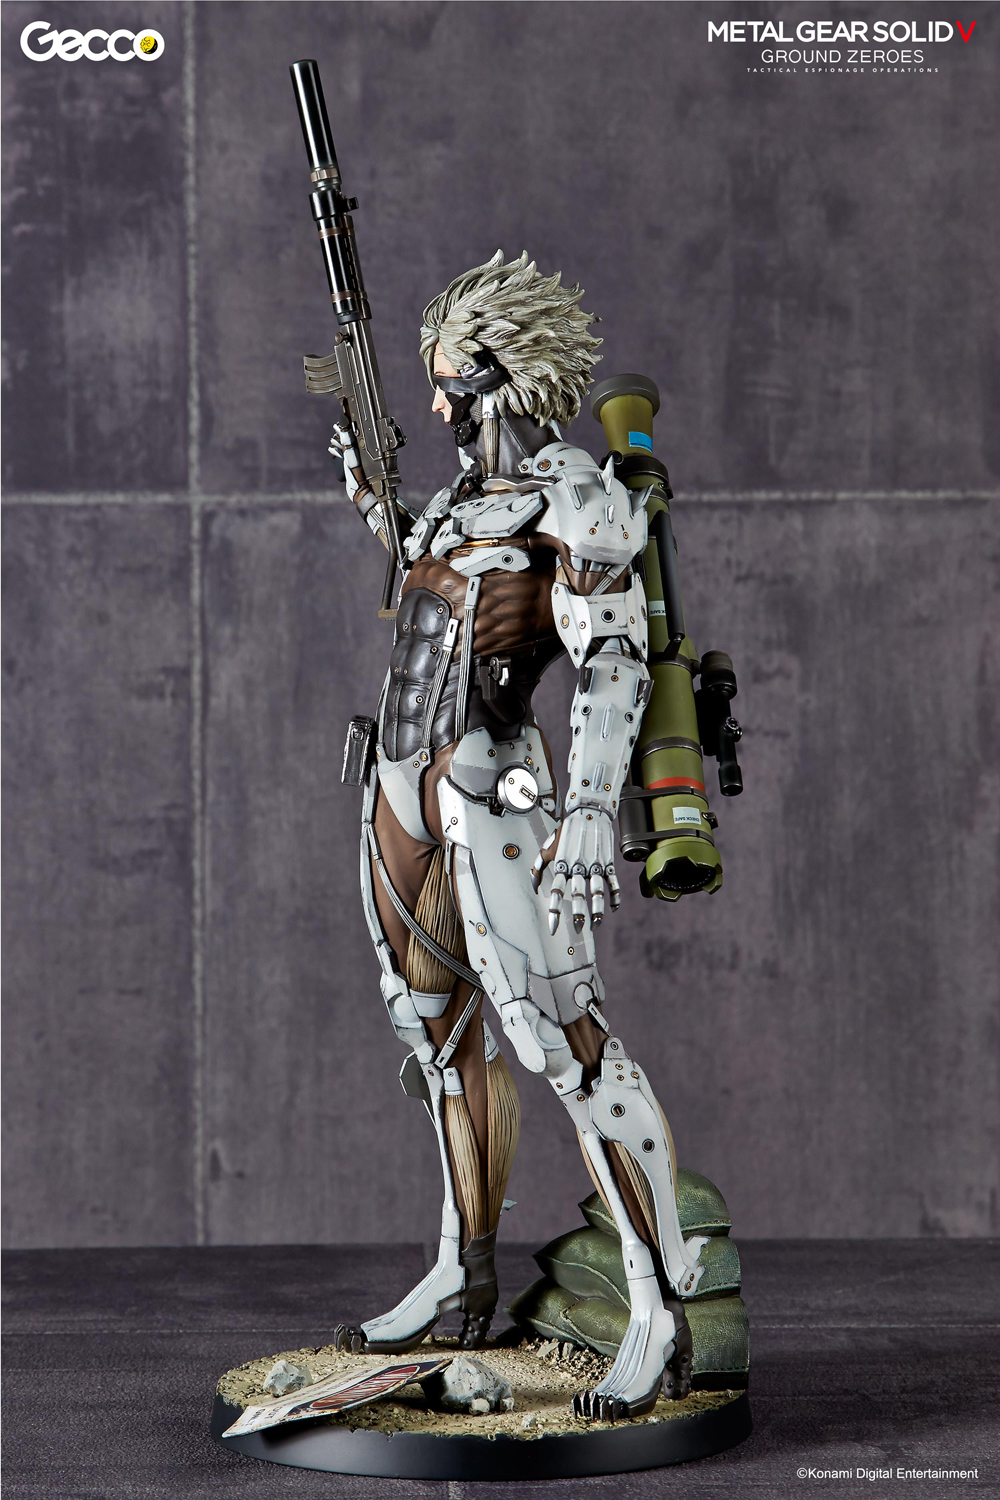 White-Raiden-Gecco-5